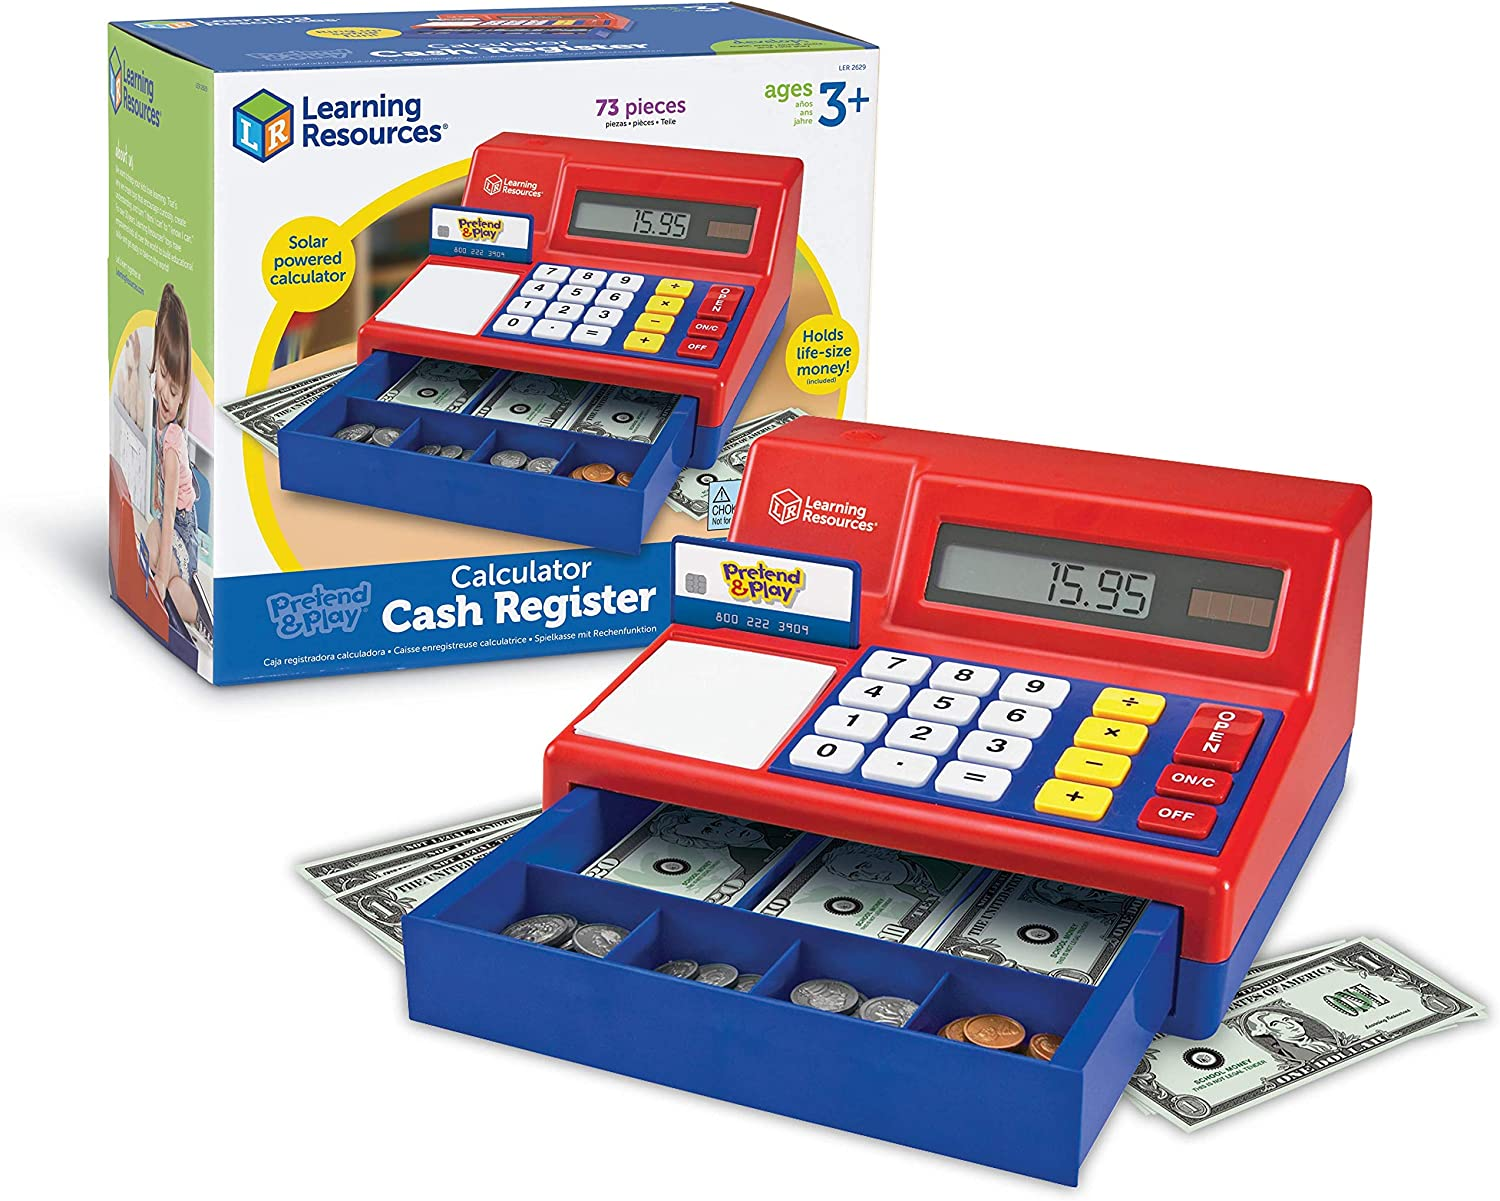 Amazon Com Learning Resources Pretend Play Calculator Cash Register Classic Counting Toy Kids Cash Register 73 Pieces Ages 3 Toys Games